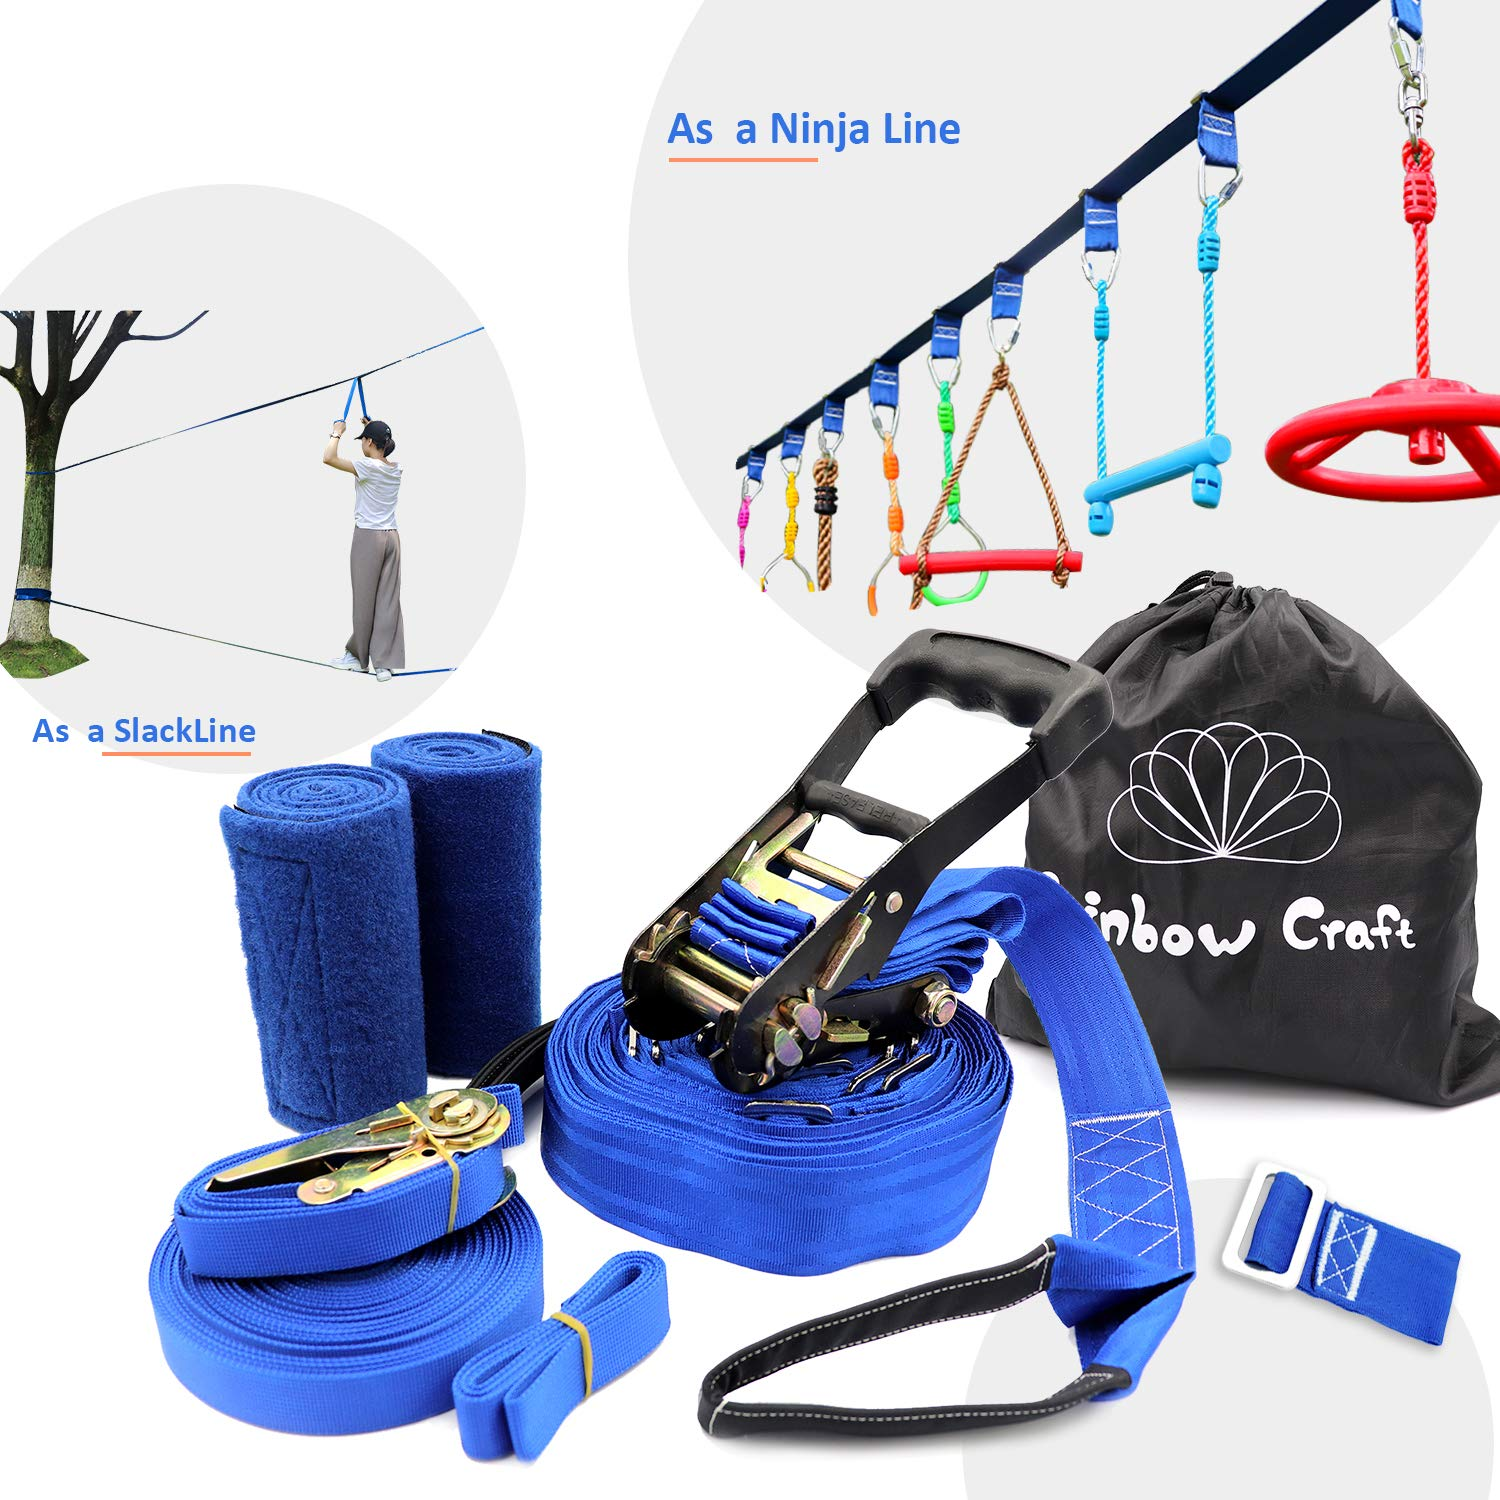 Rainbow Craft Hanging Obstacle Course Accessories for Kids (Blue Color Ninja Slackline - Blue Loops(N))